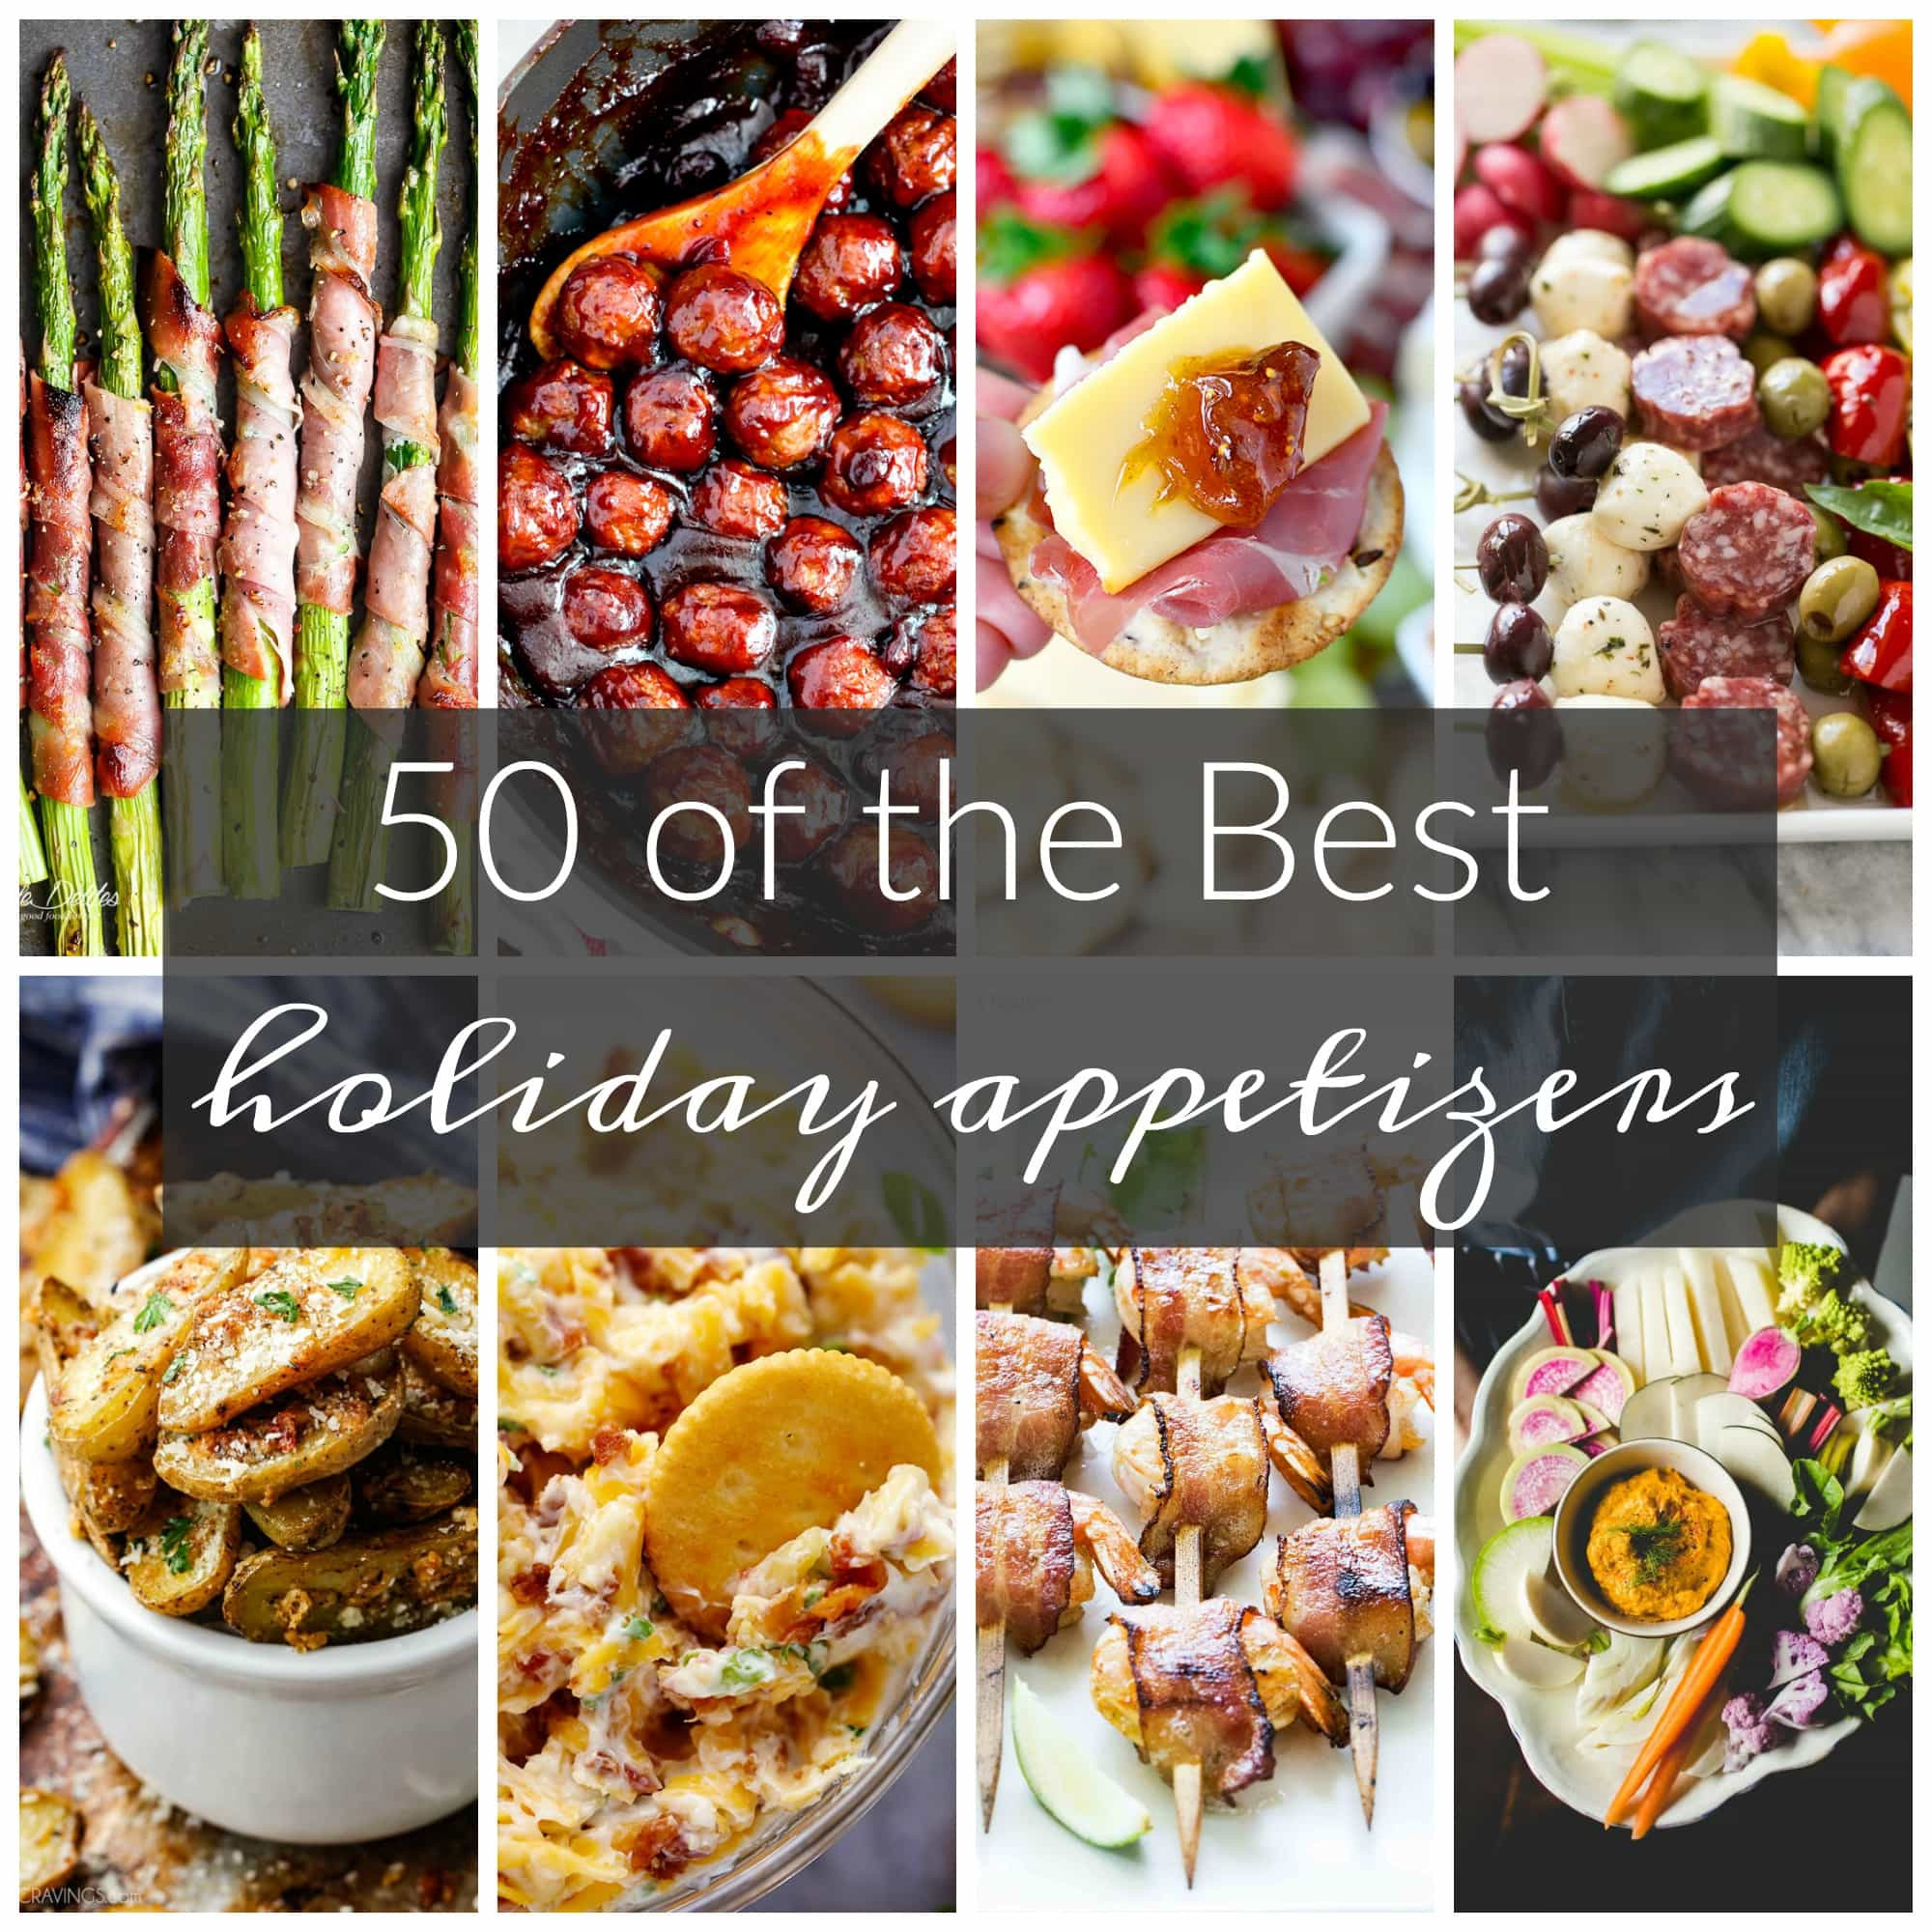 Party Appetizers For Christmas  50 of the Best Appetizers for the Holidays A Dash of Sanity